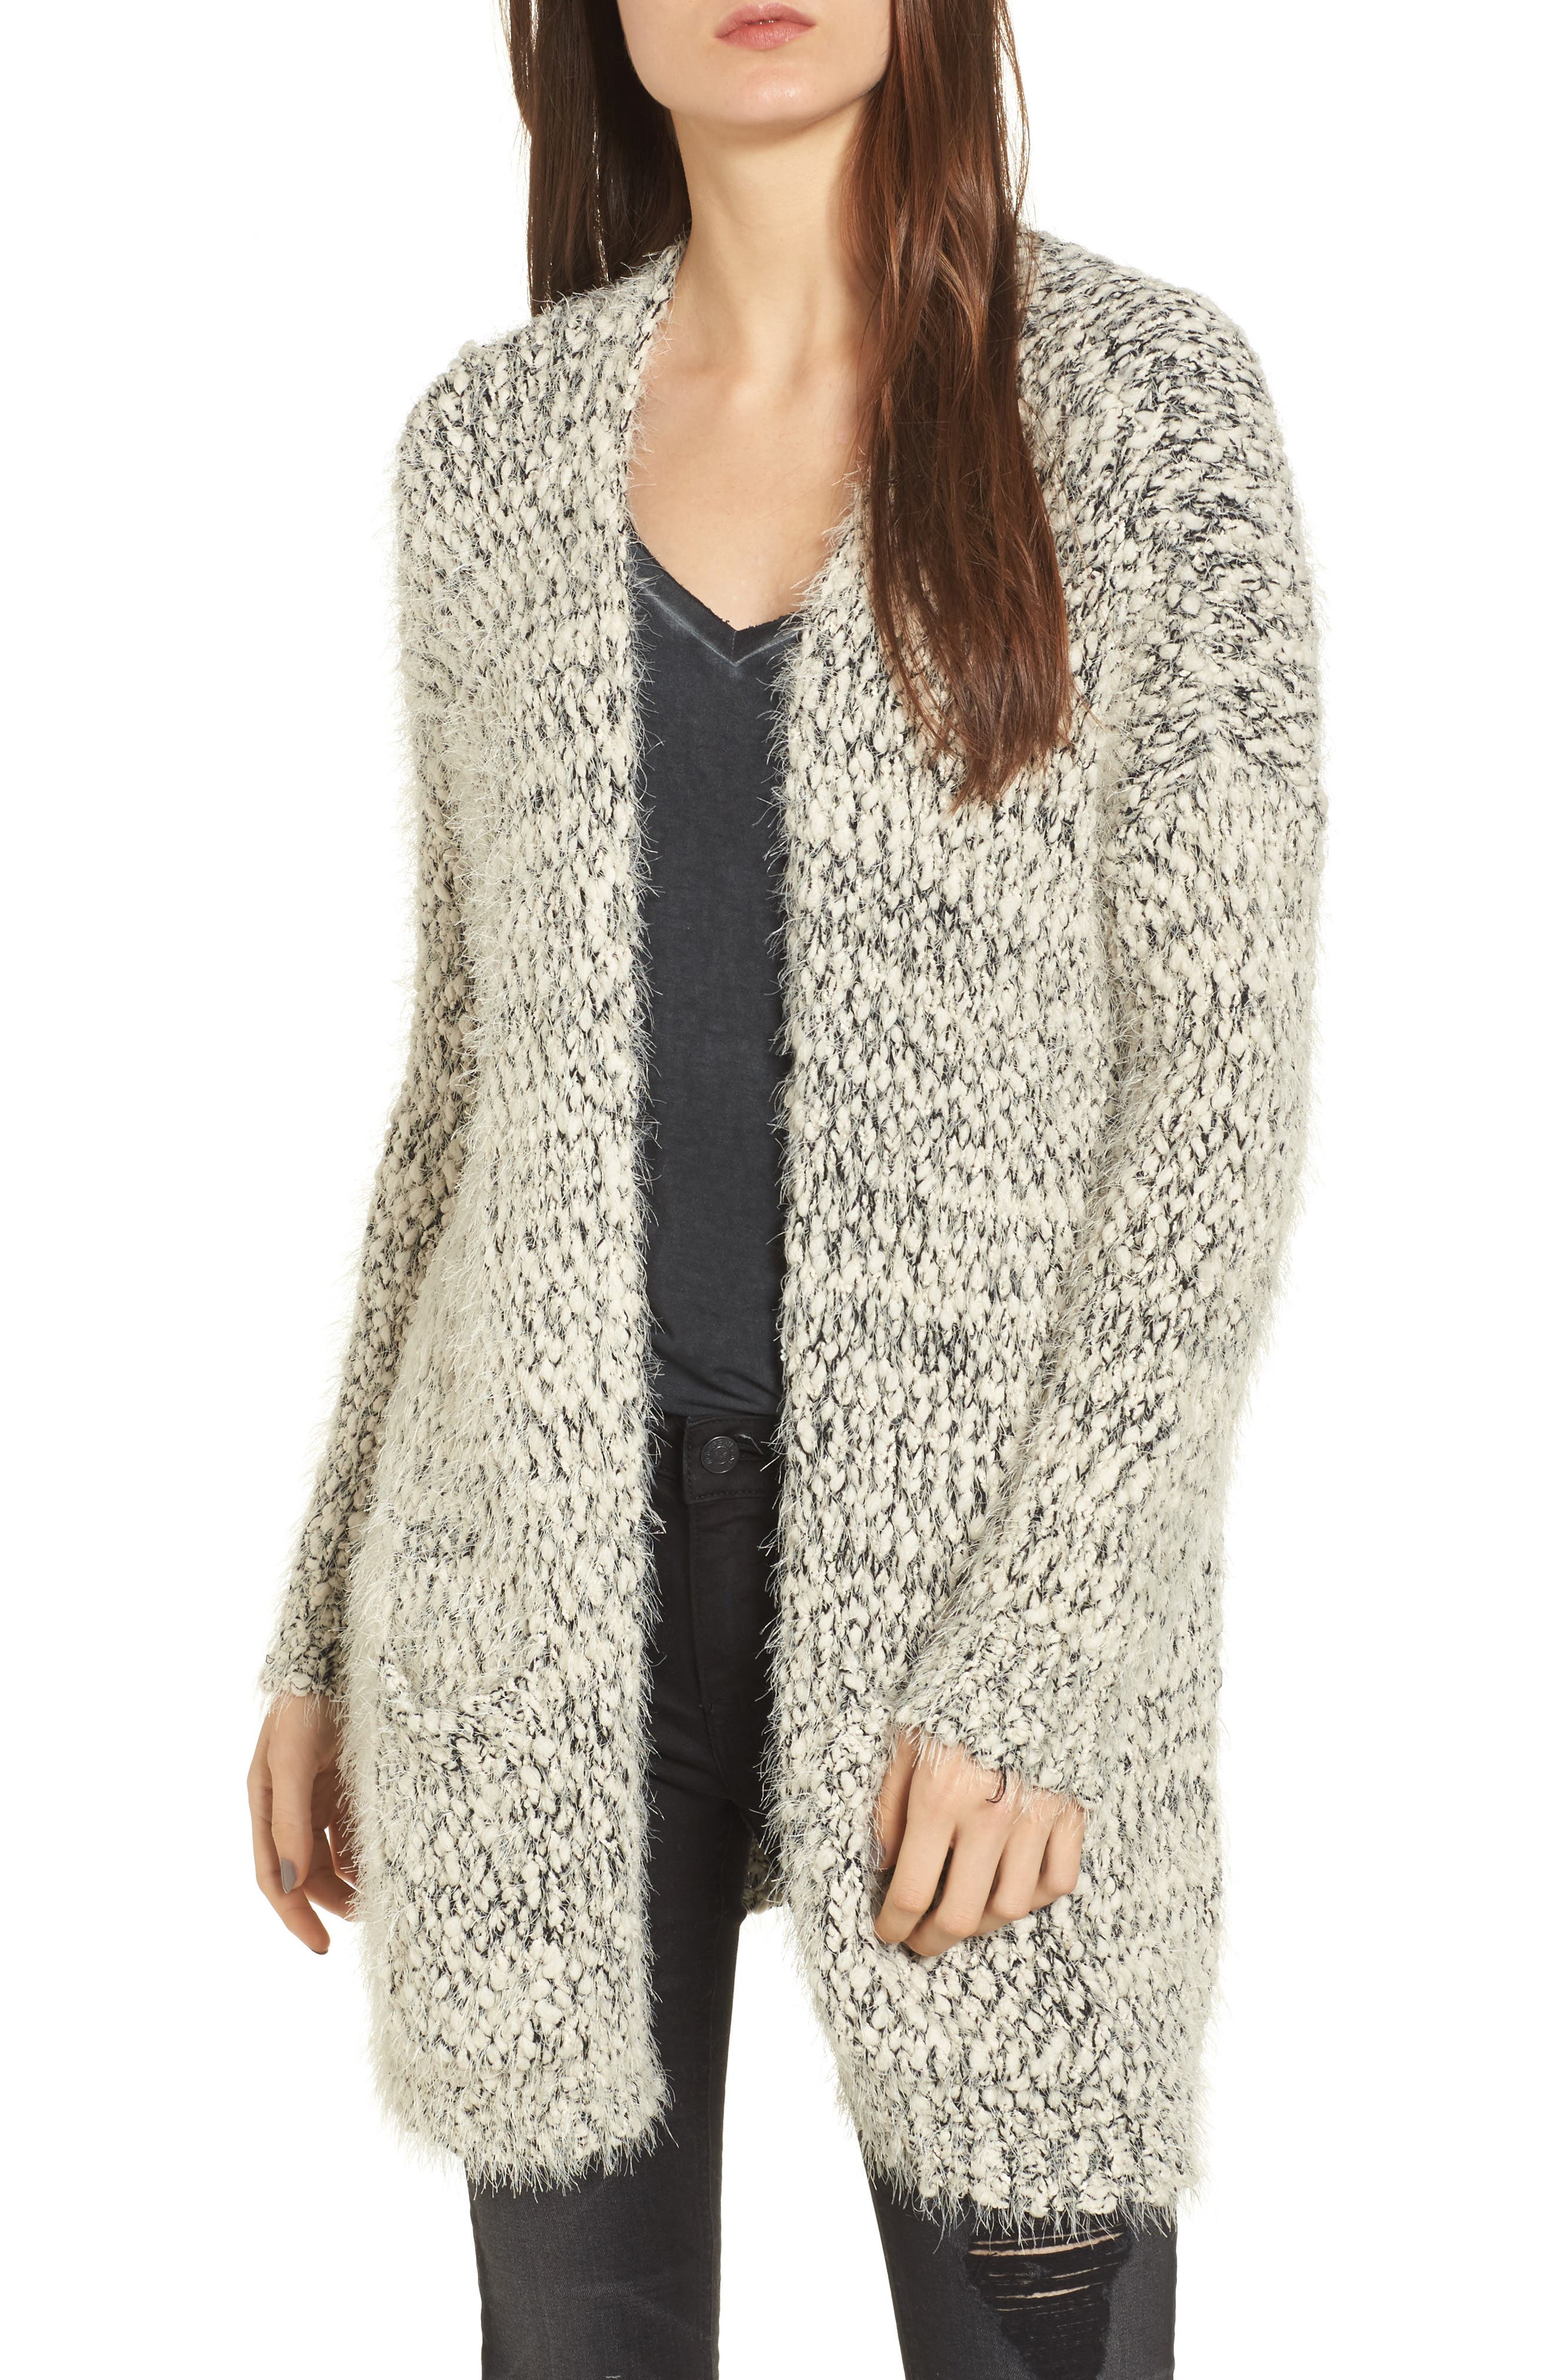 Alternate Image 1 Selected - Woven Heart Textured Cardigan